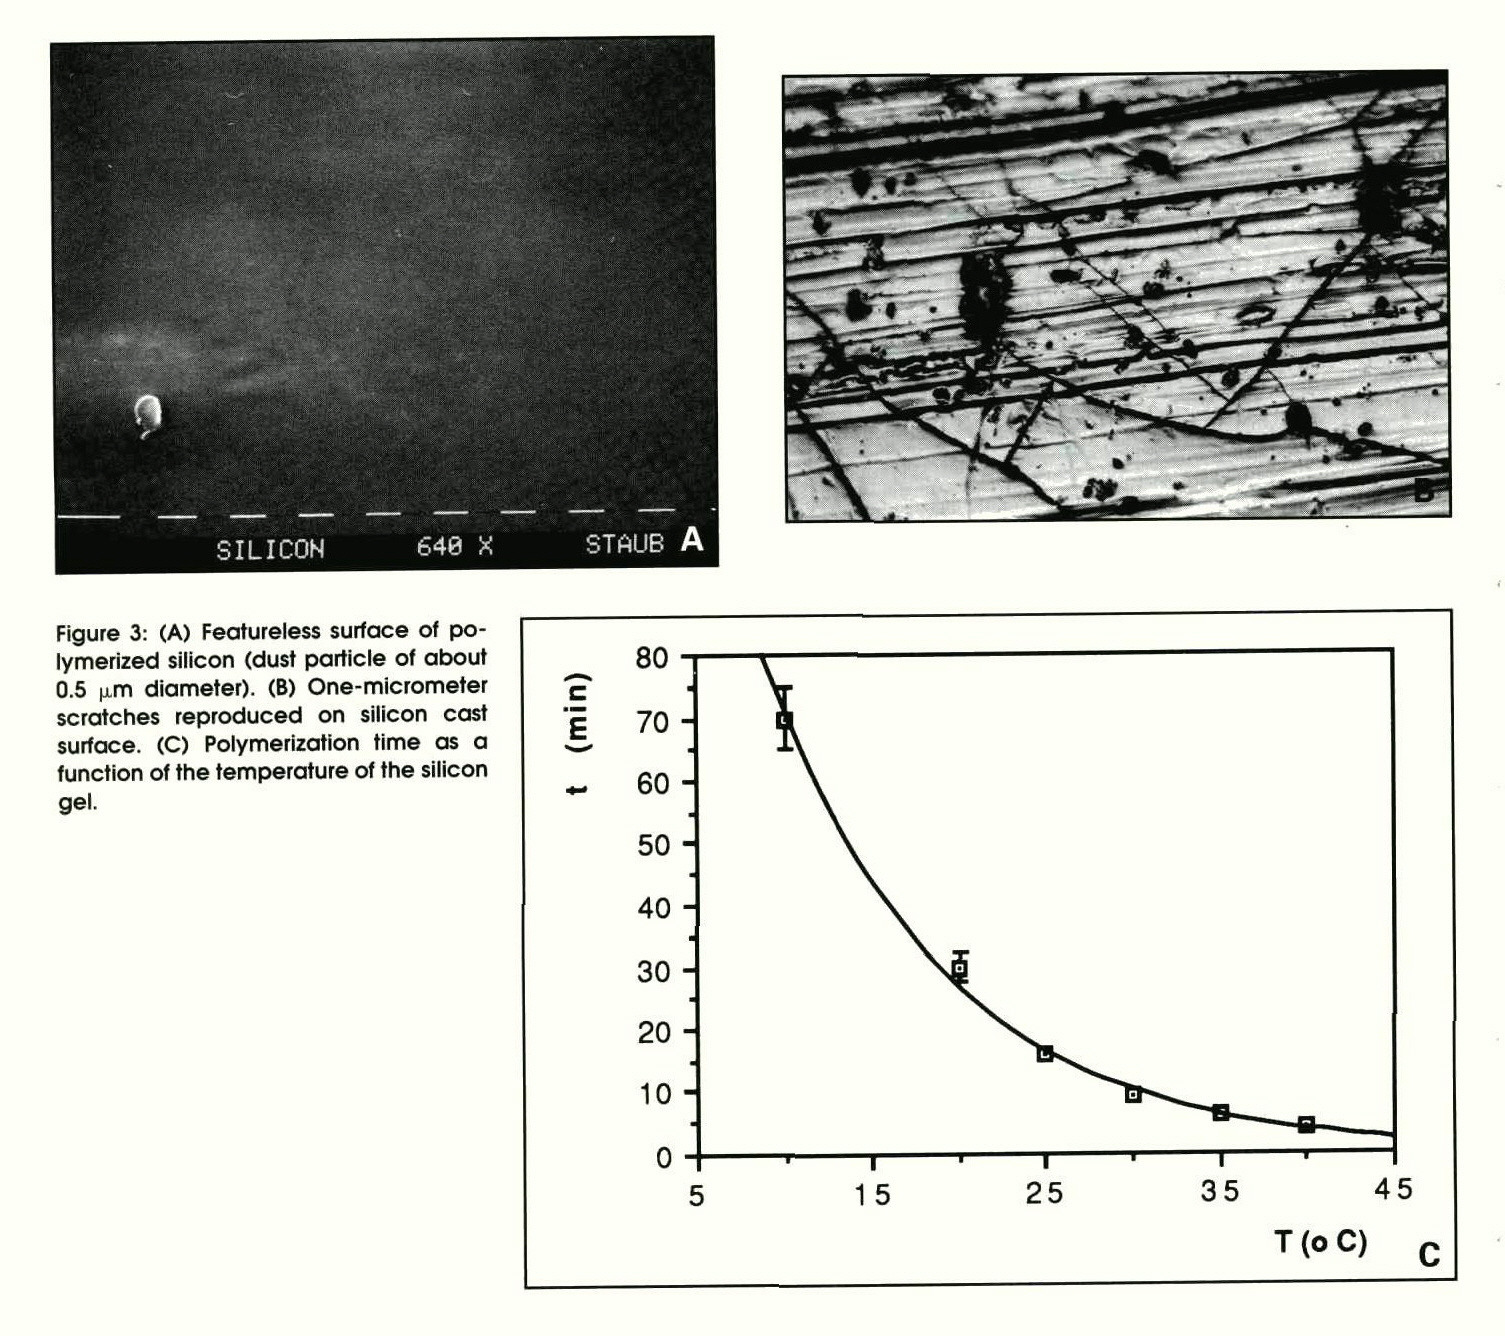 Figure 3: (A) Featureless surface of polymerized silicon (dust particle of about 0.5 µm diameter). (B) One-micrometer scratches reproduced on silicon cast surface. (C) Polymerization time as a function of the temperature of the silicon gel.